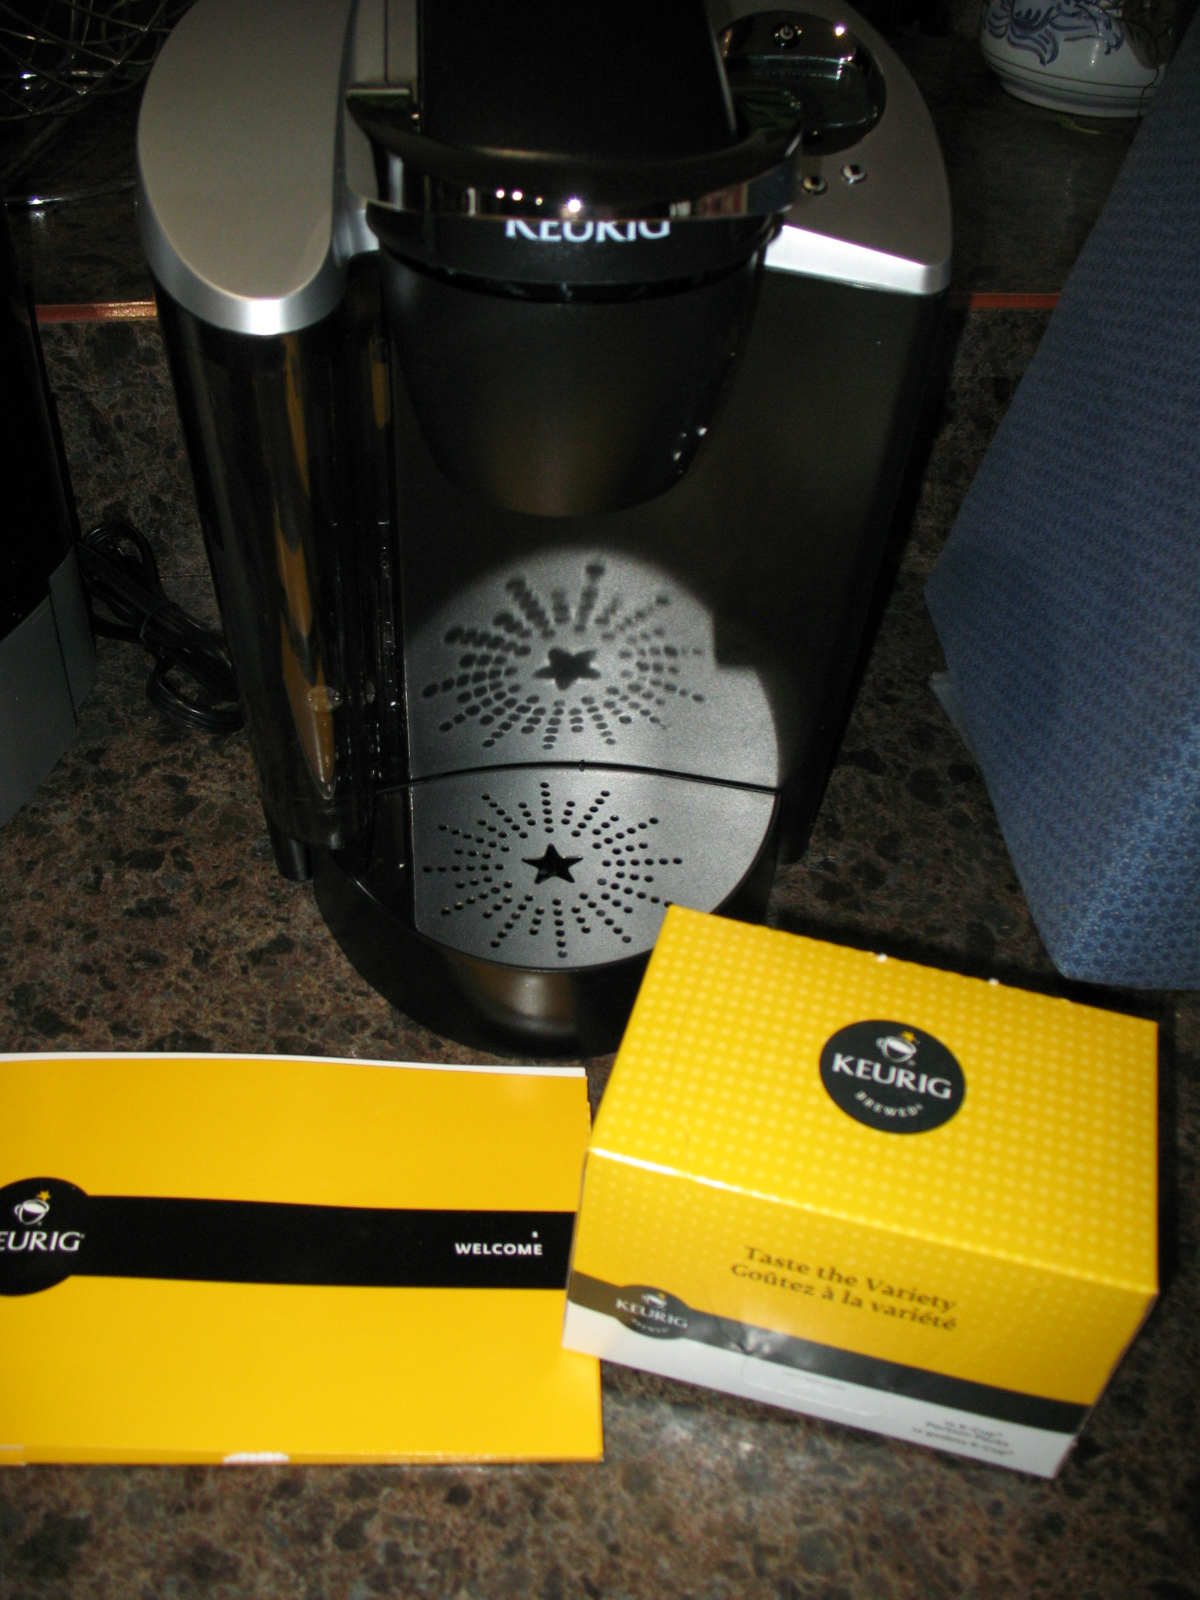 Keurig Coffee Maker Maintenance Manual : Keurig Special Edition/Signature B60 Review - Central Minnesota Mom